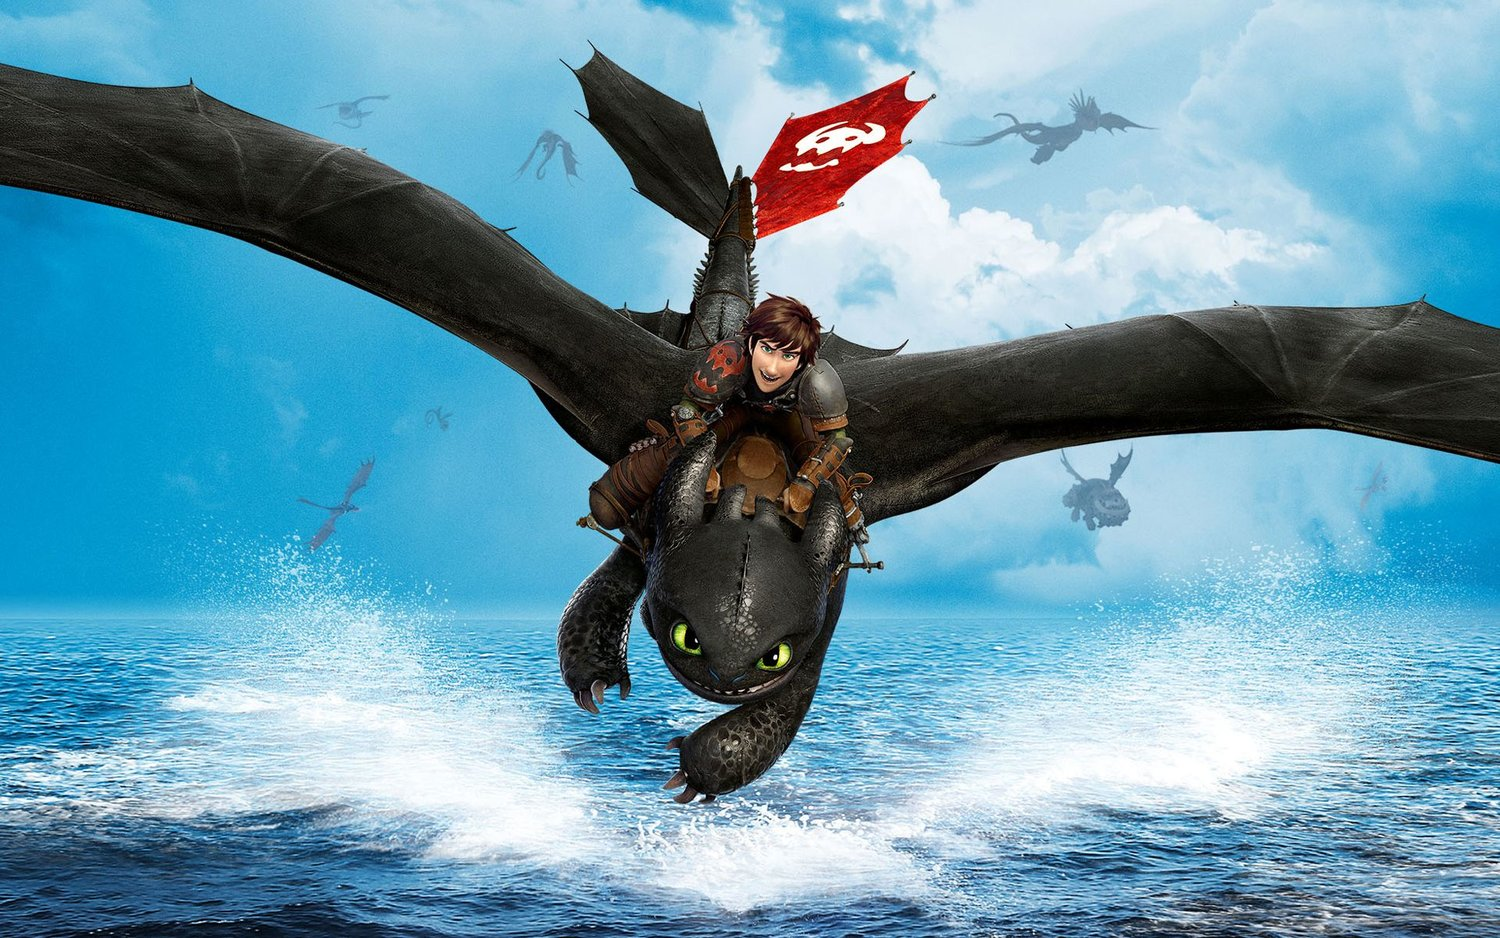 How to train your dragon 3 gets official title and release date it has been years since we heard anything about how to train your dragon 3 the last thing we did hear we got a bit of info regarding the story ccuart Images